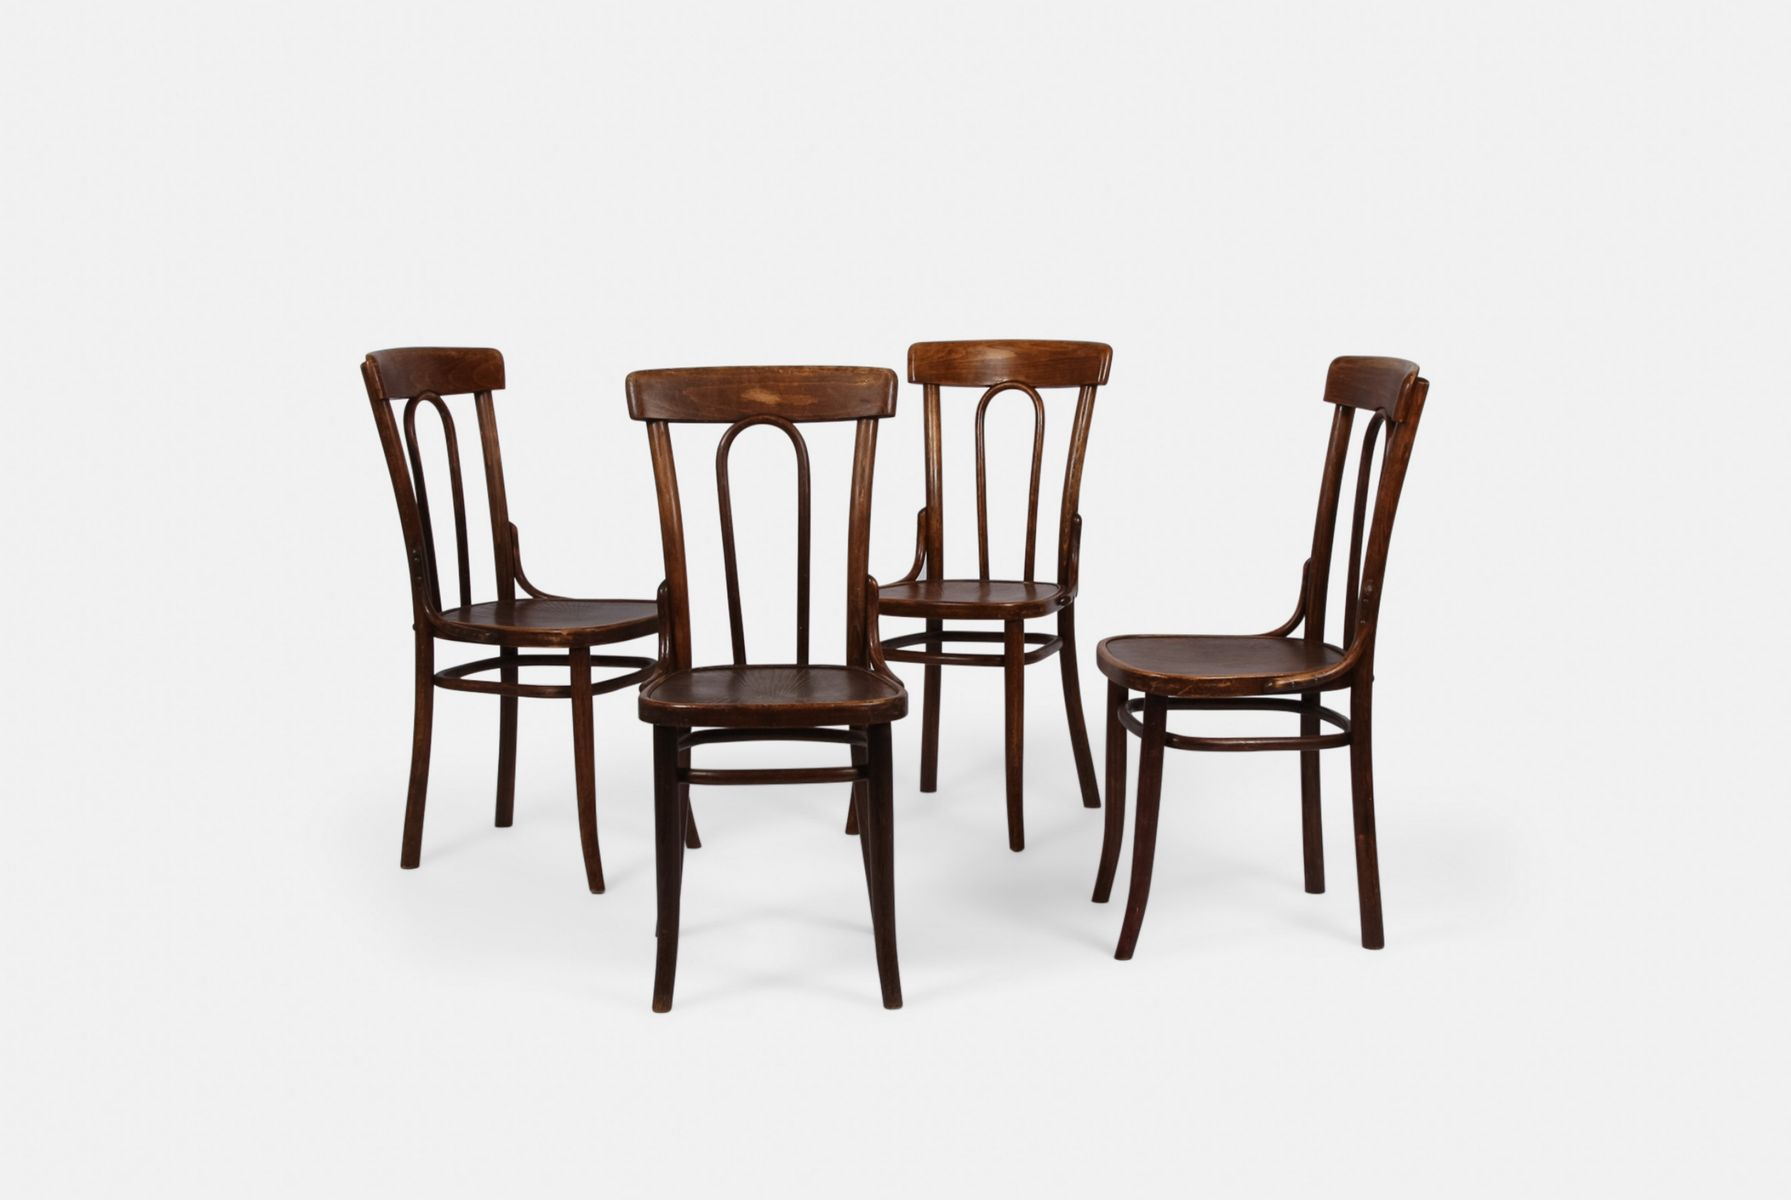 Attirant Vintage Bentwood Chairs, Set Of 4